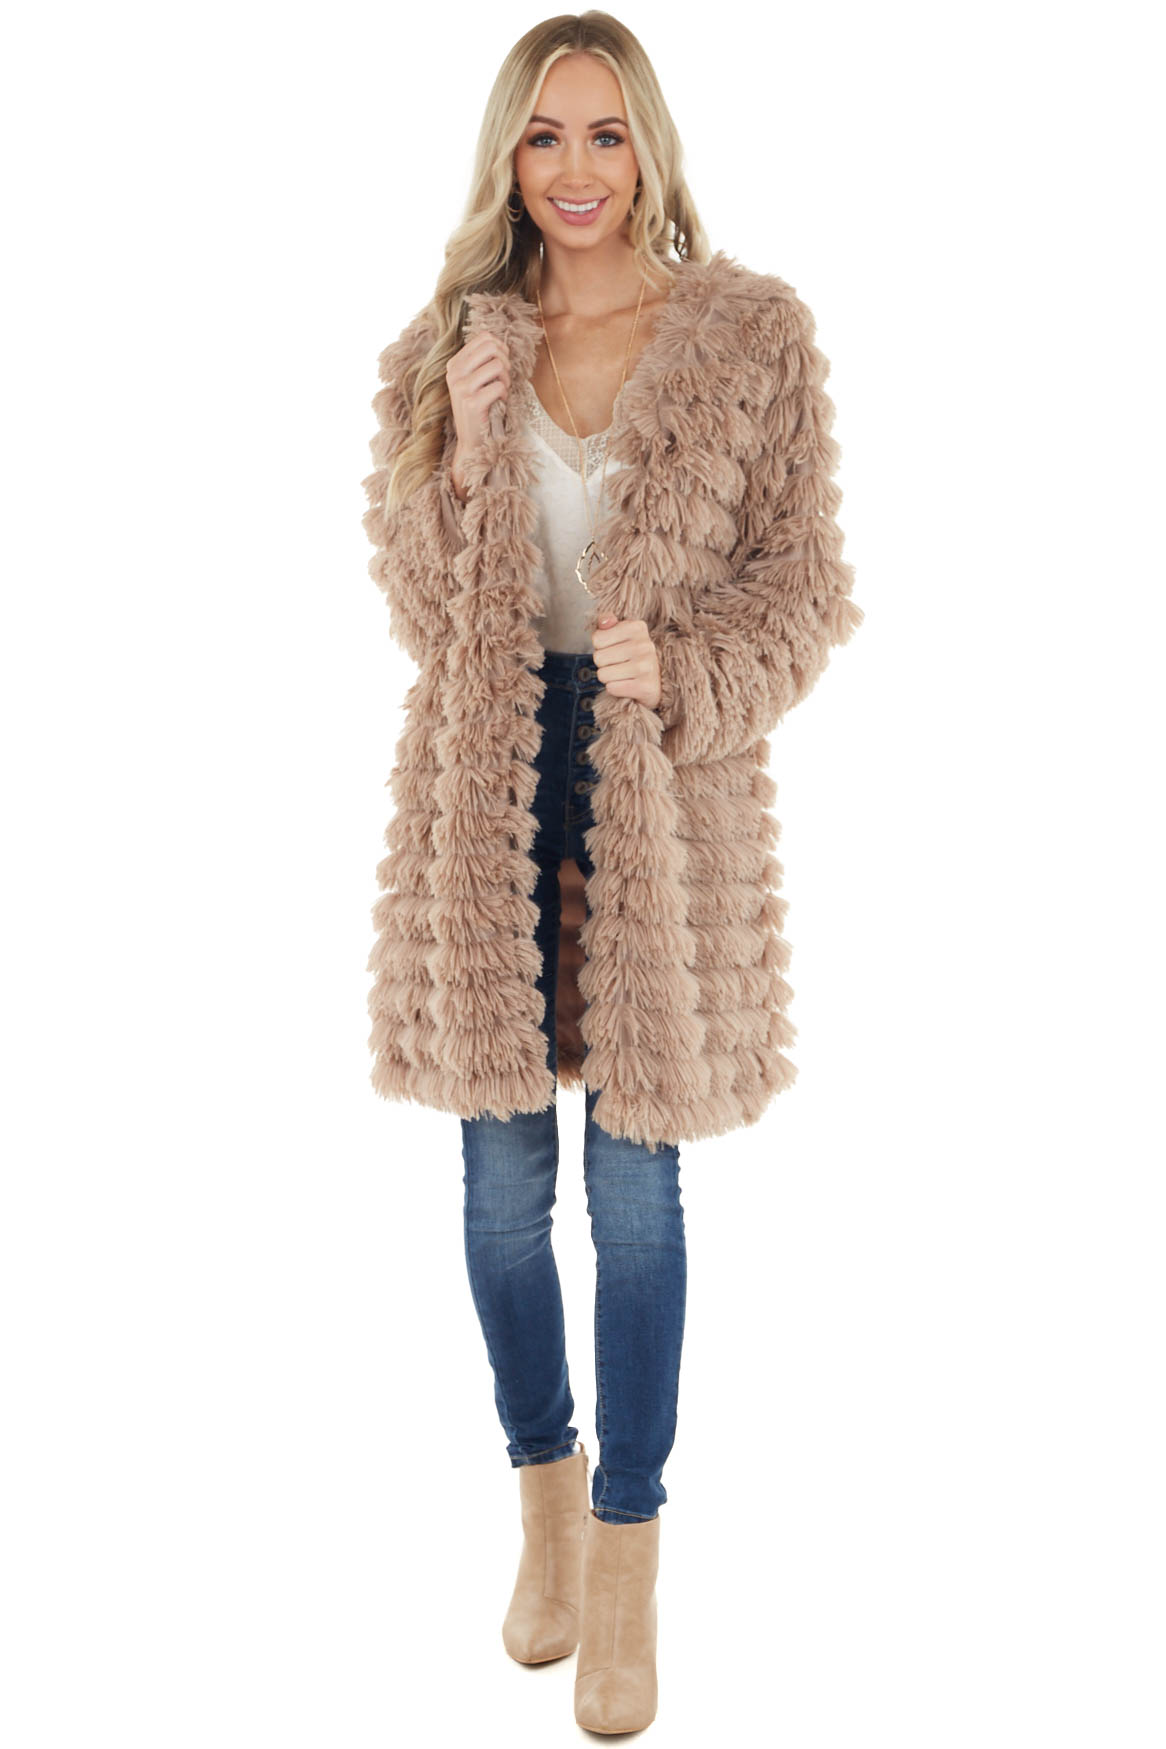 Mocha Faux Fur Long Sleeve Cardigan with Front Pockets